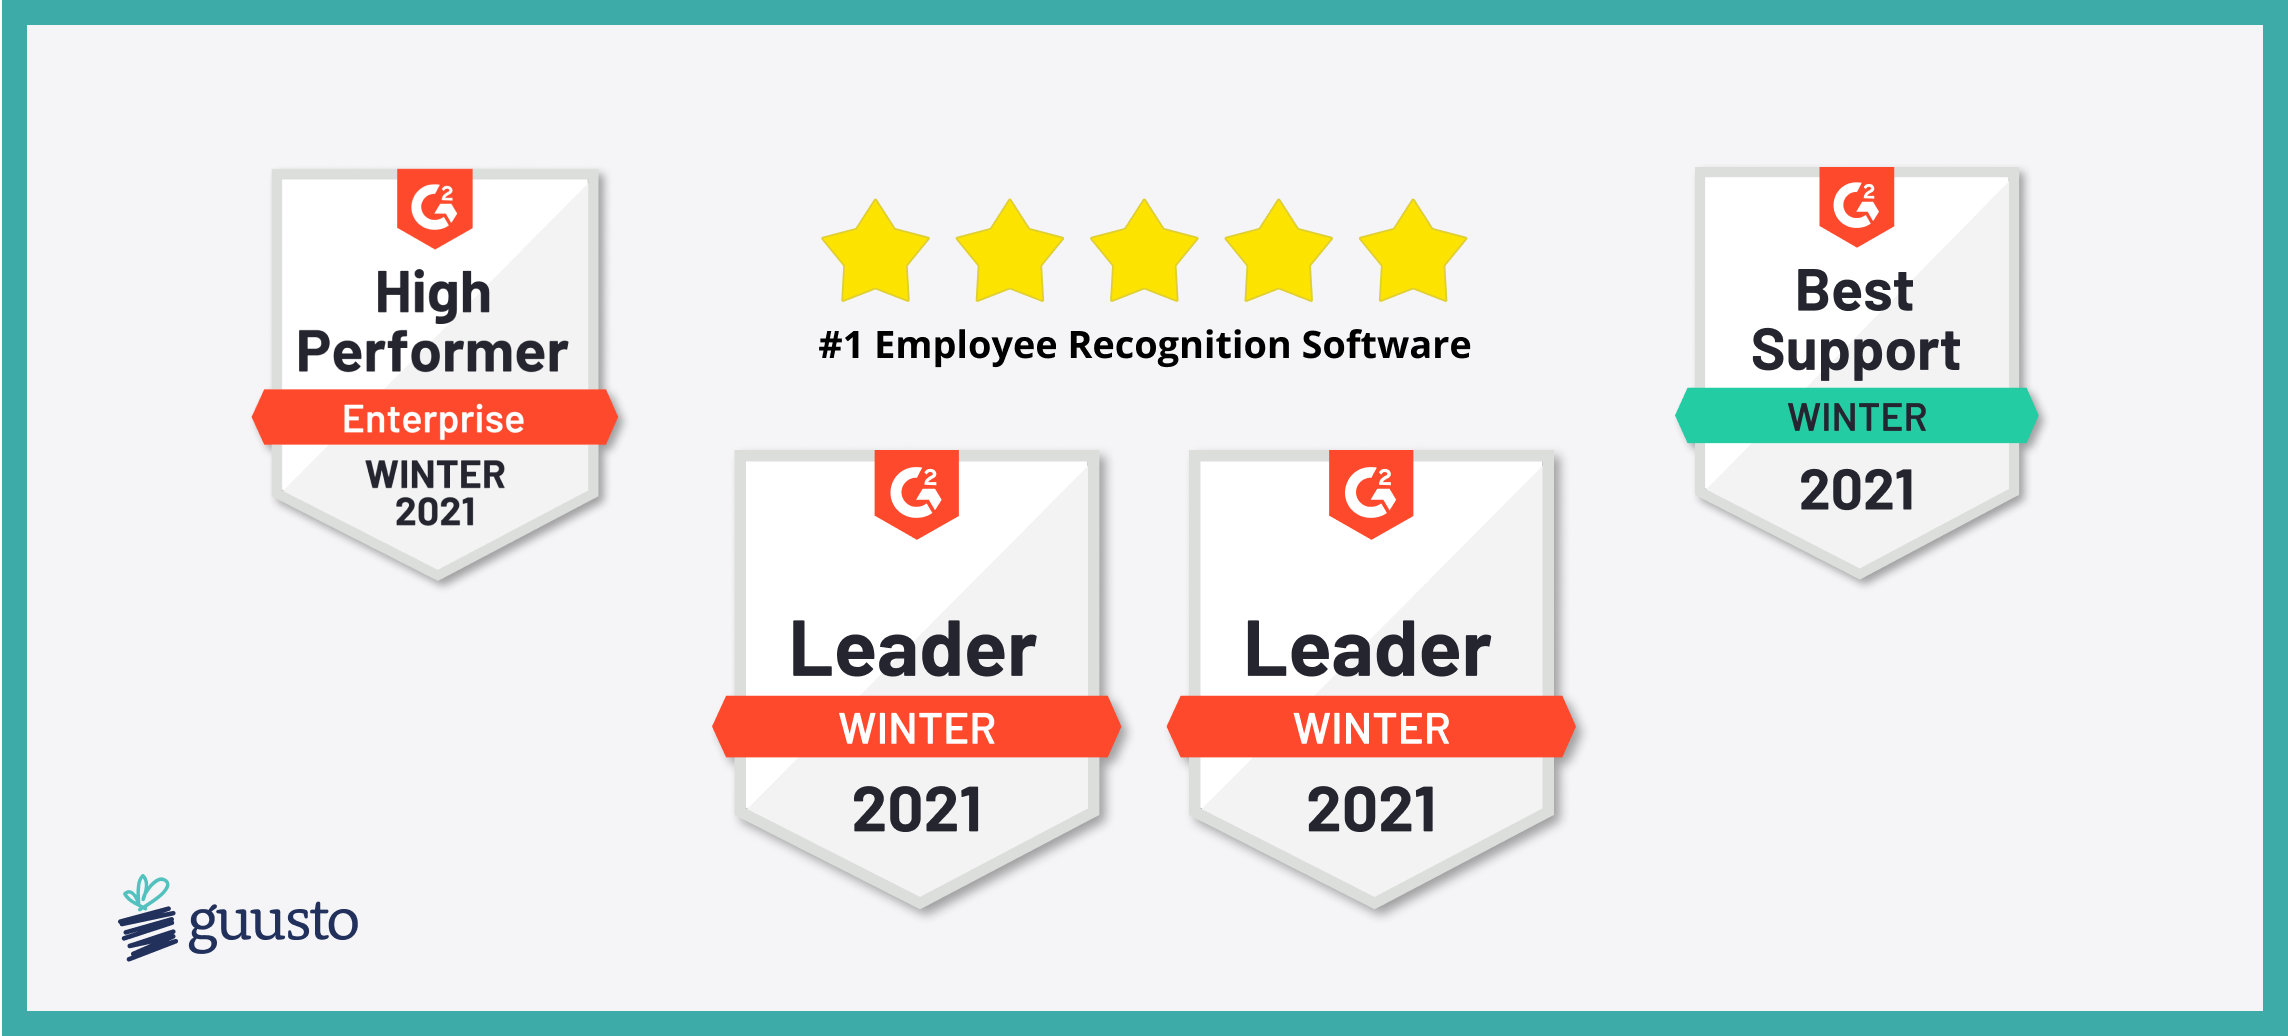 Guusto Named Leader in Employee Recognition & Loyalty Management | Winter 2021 G2 Awards